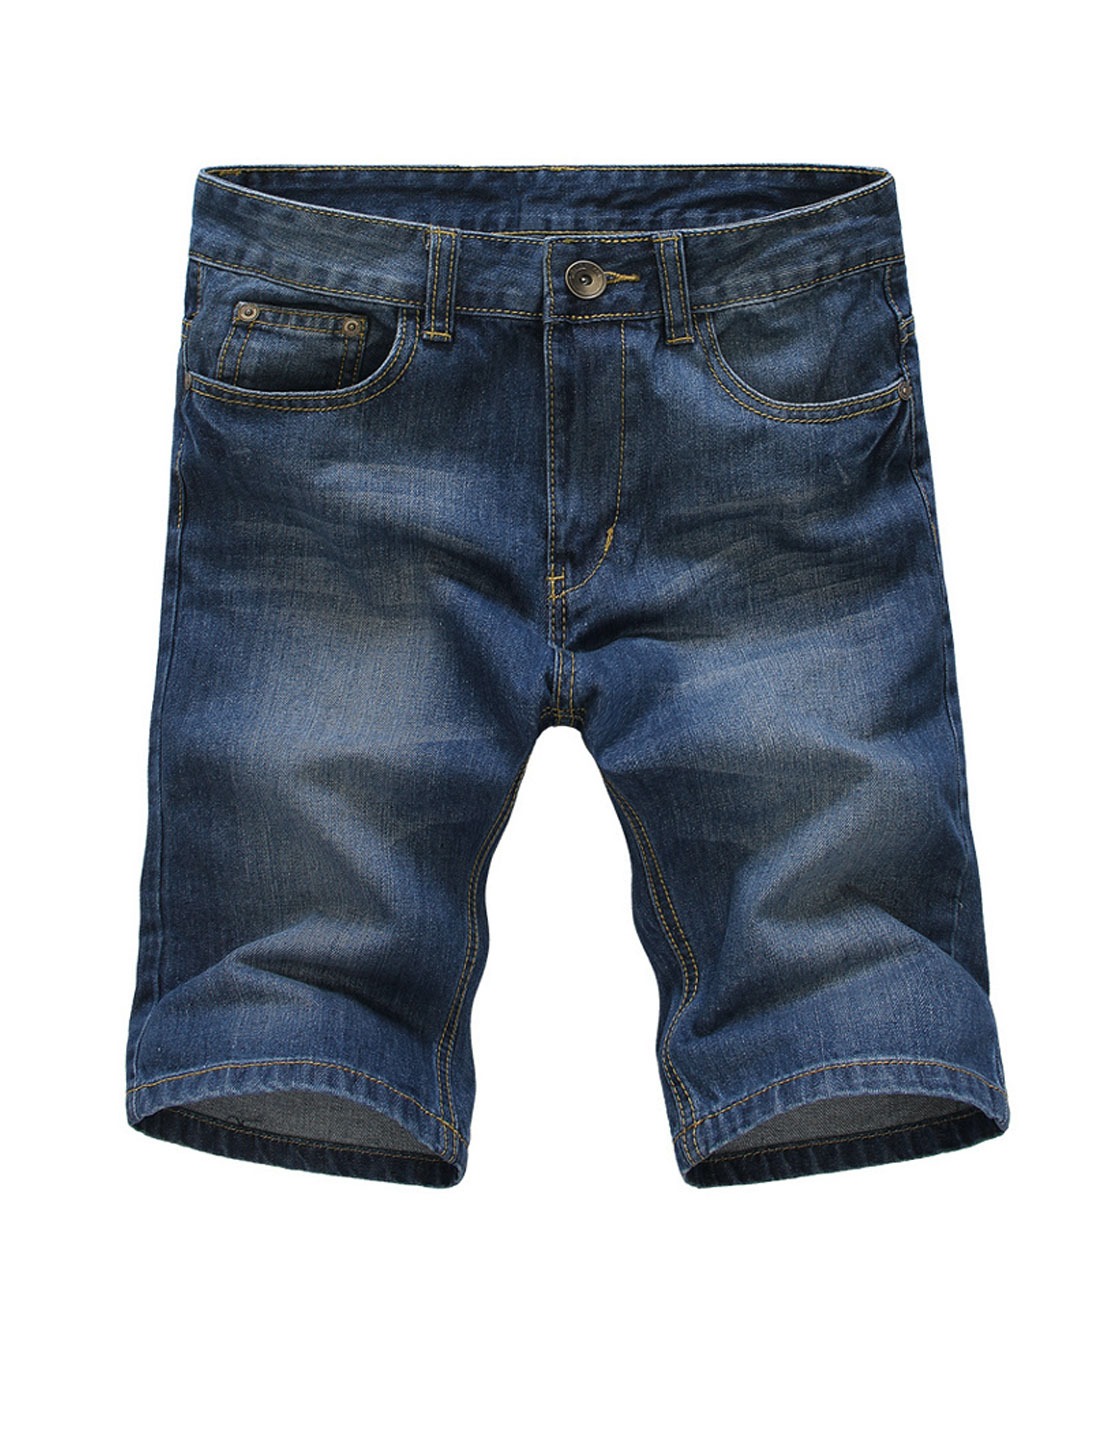 Front Hip Pockets Zip Fly Mid Rise Denim Shorts for Man Dark Blue W34